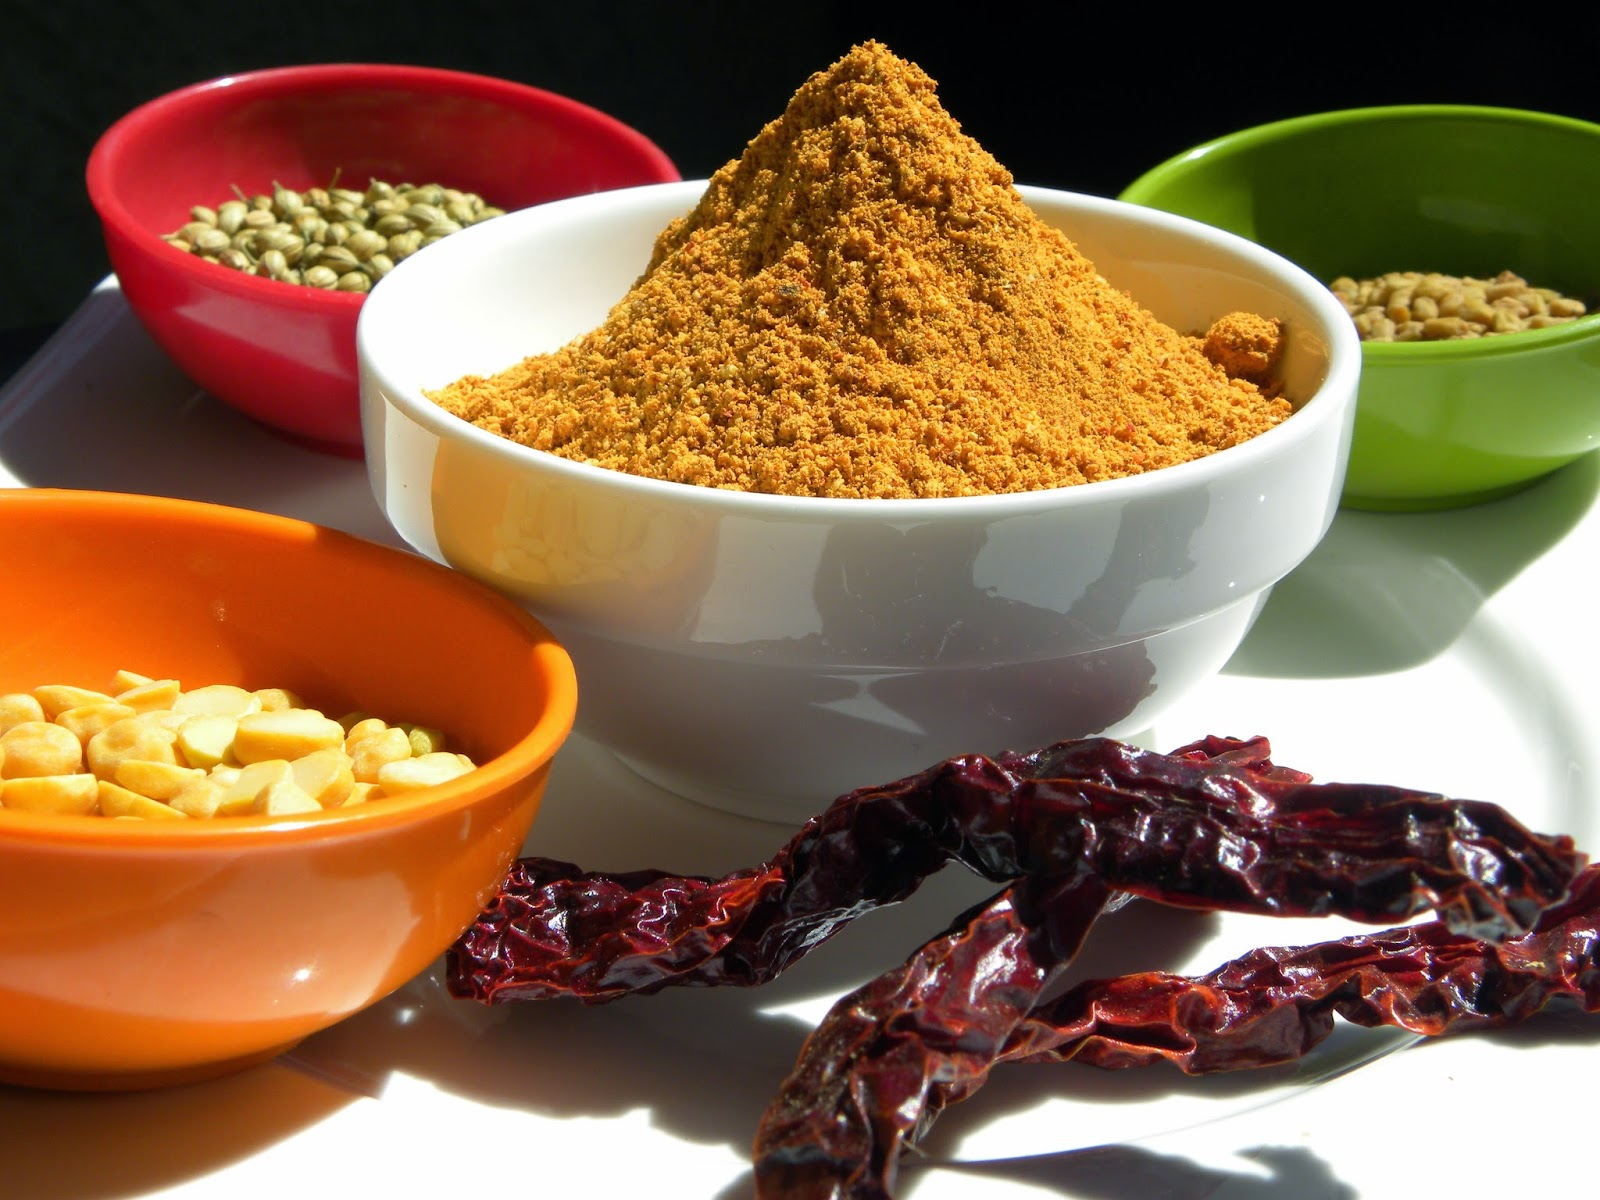 Make your own sambar powder in a jiffy and enjoy delicious sambar with your family